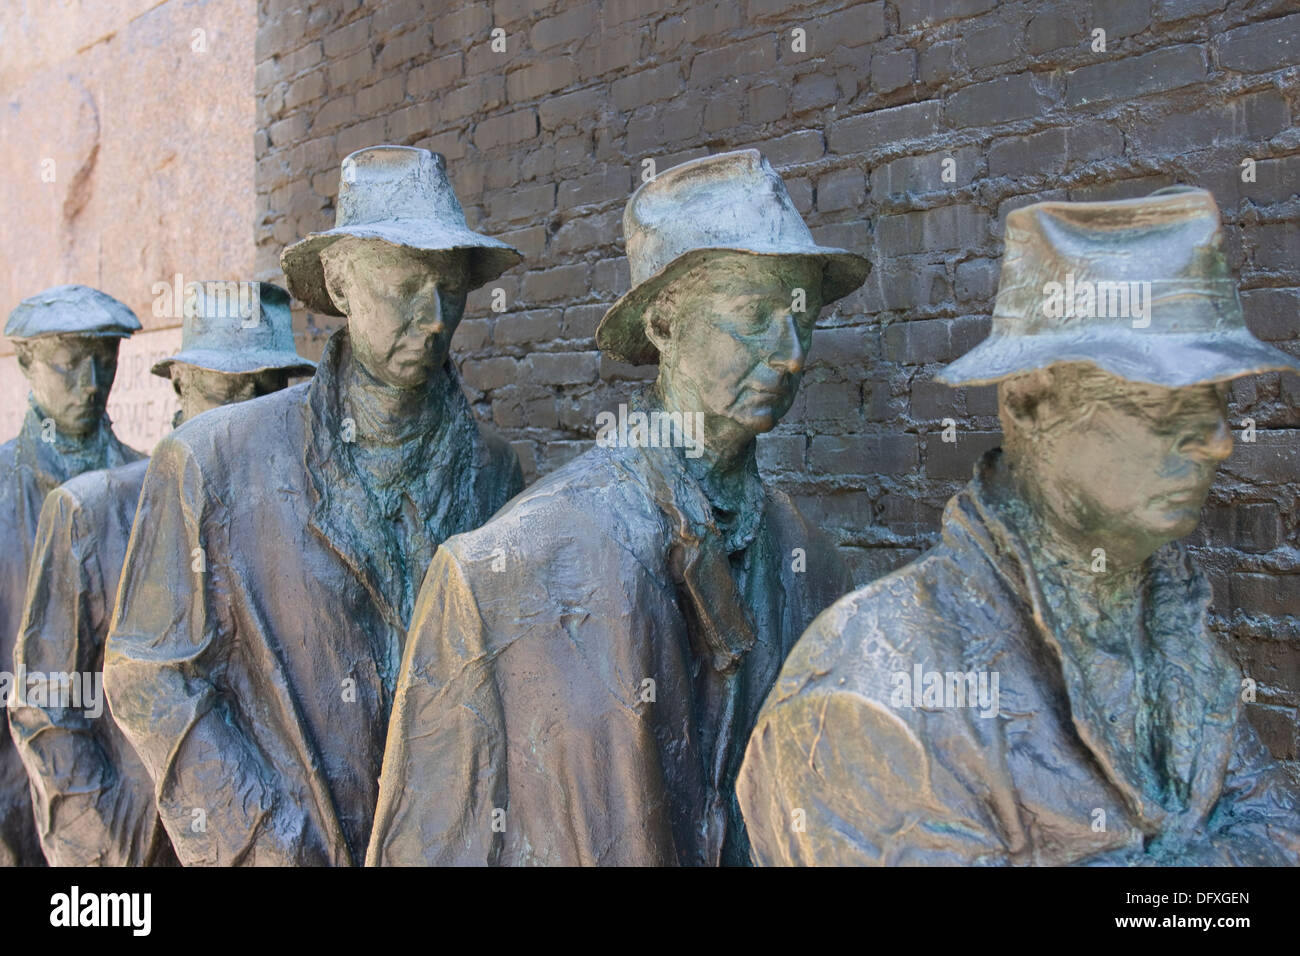 Example of a Depression line from depression era United States (Roosevelt Memorial, Washington, DC) - Stock Image